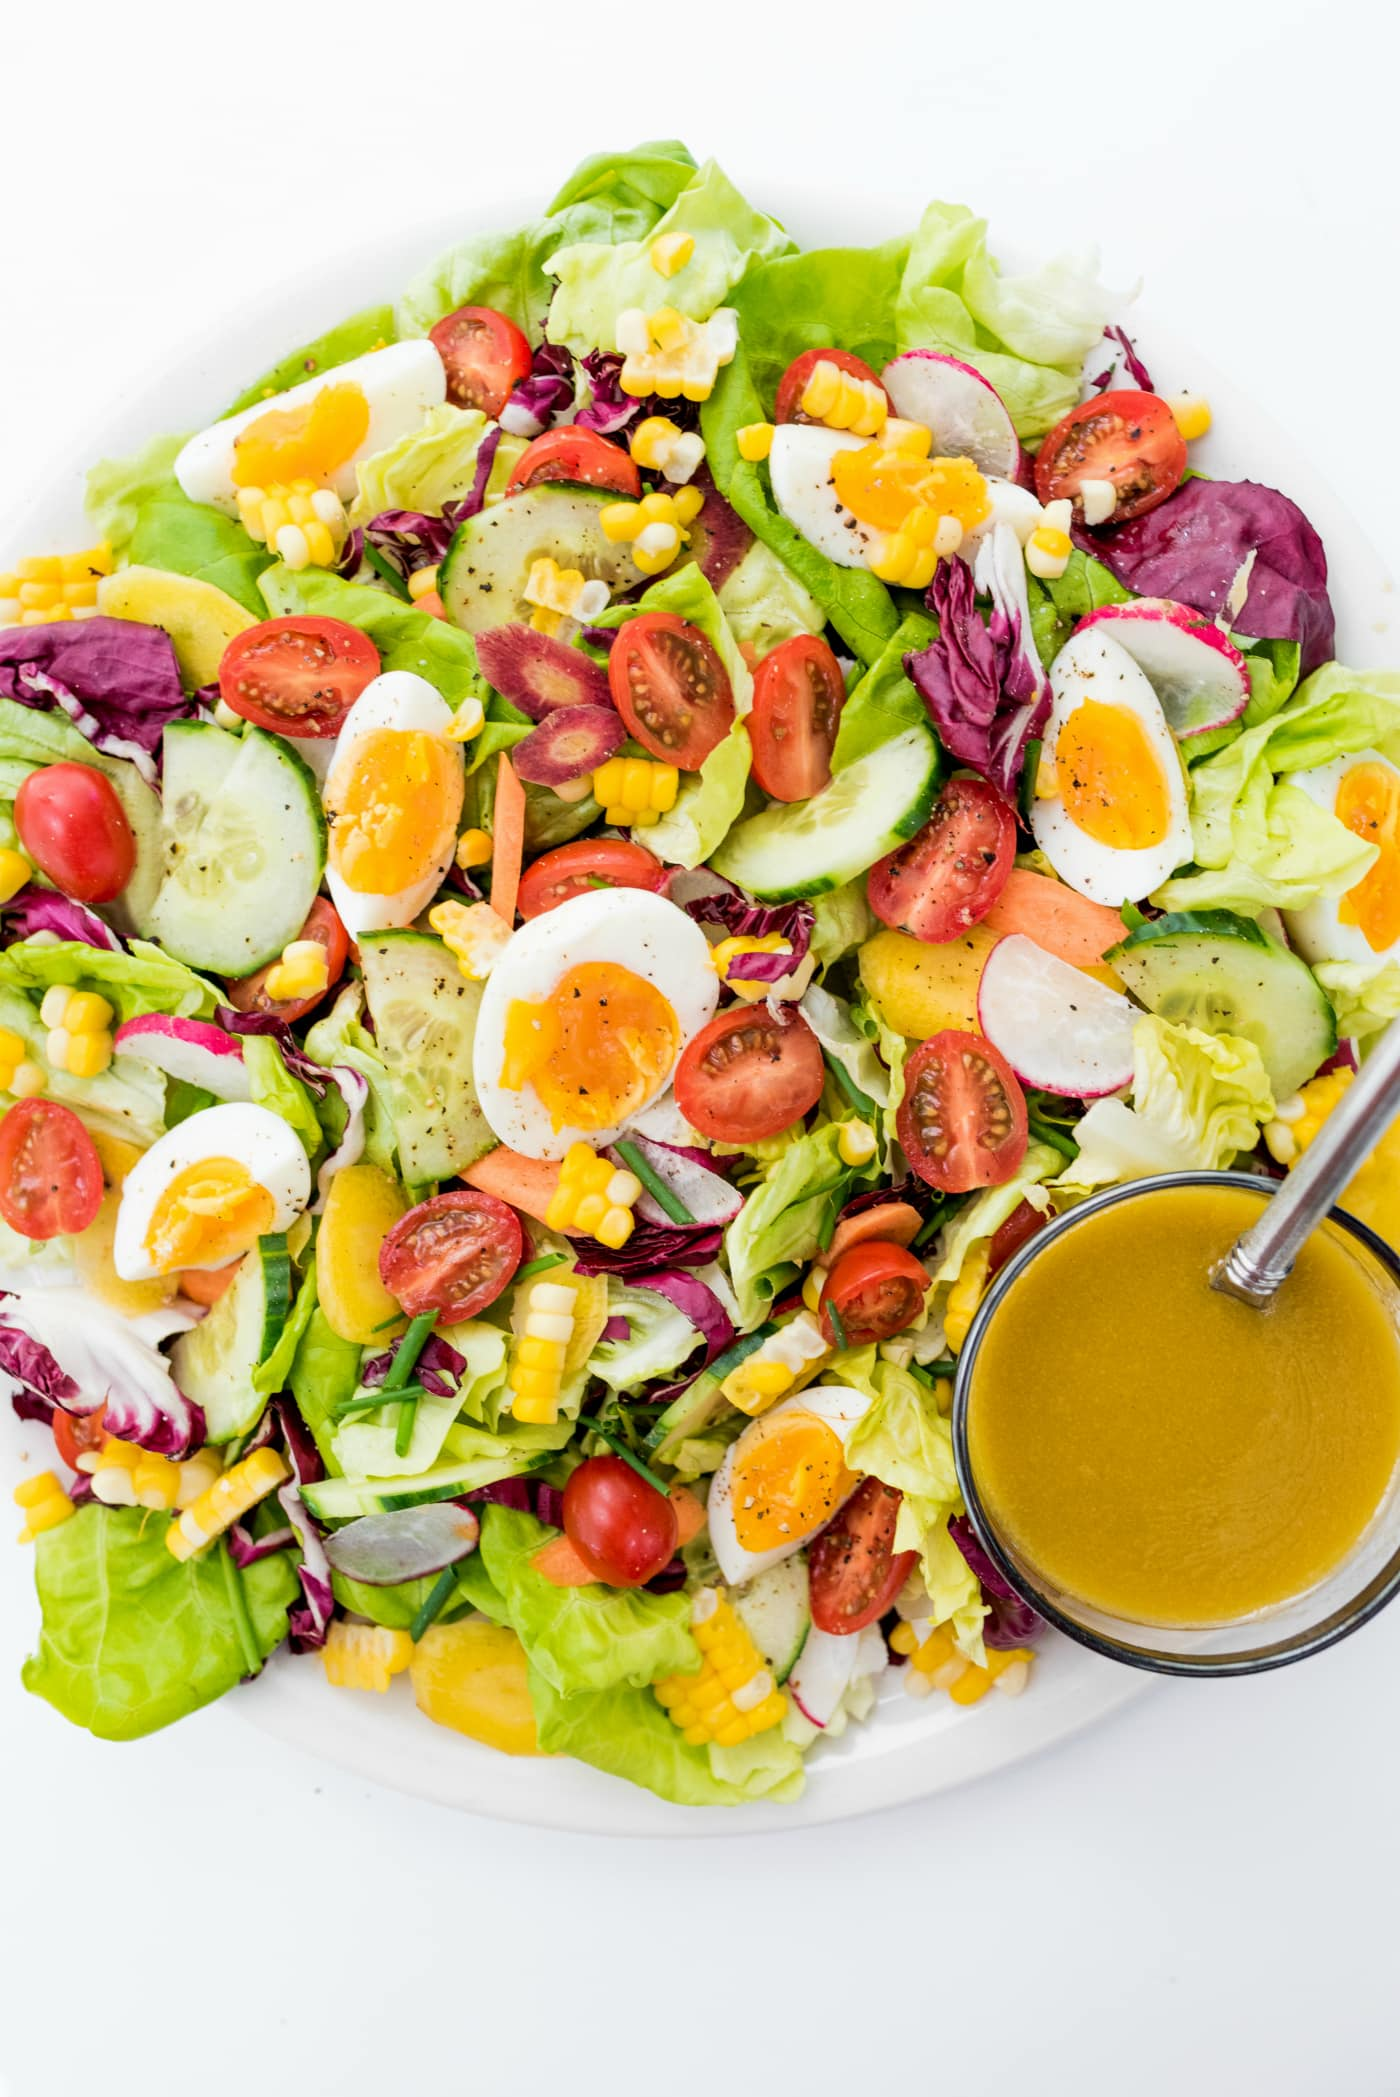 Salad Recipes With Lettuce